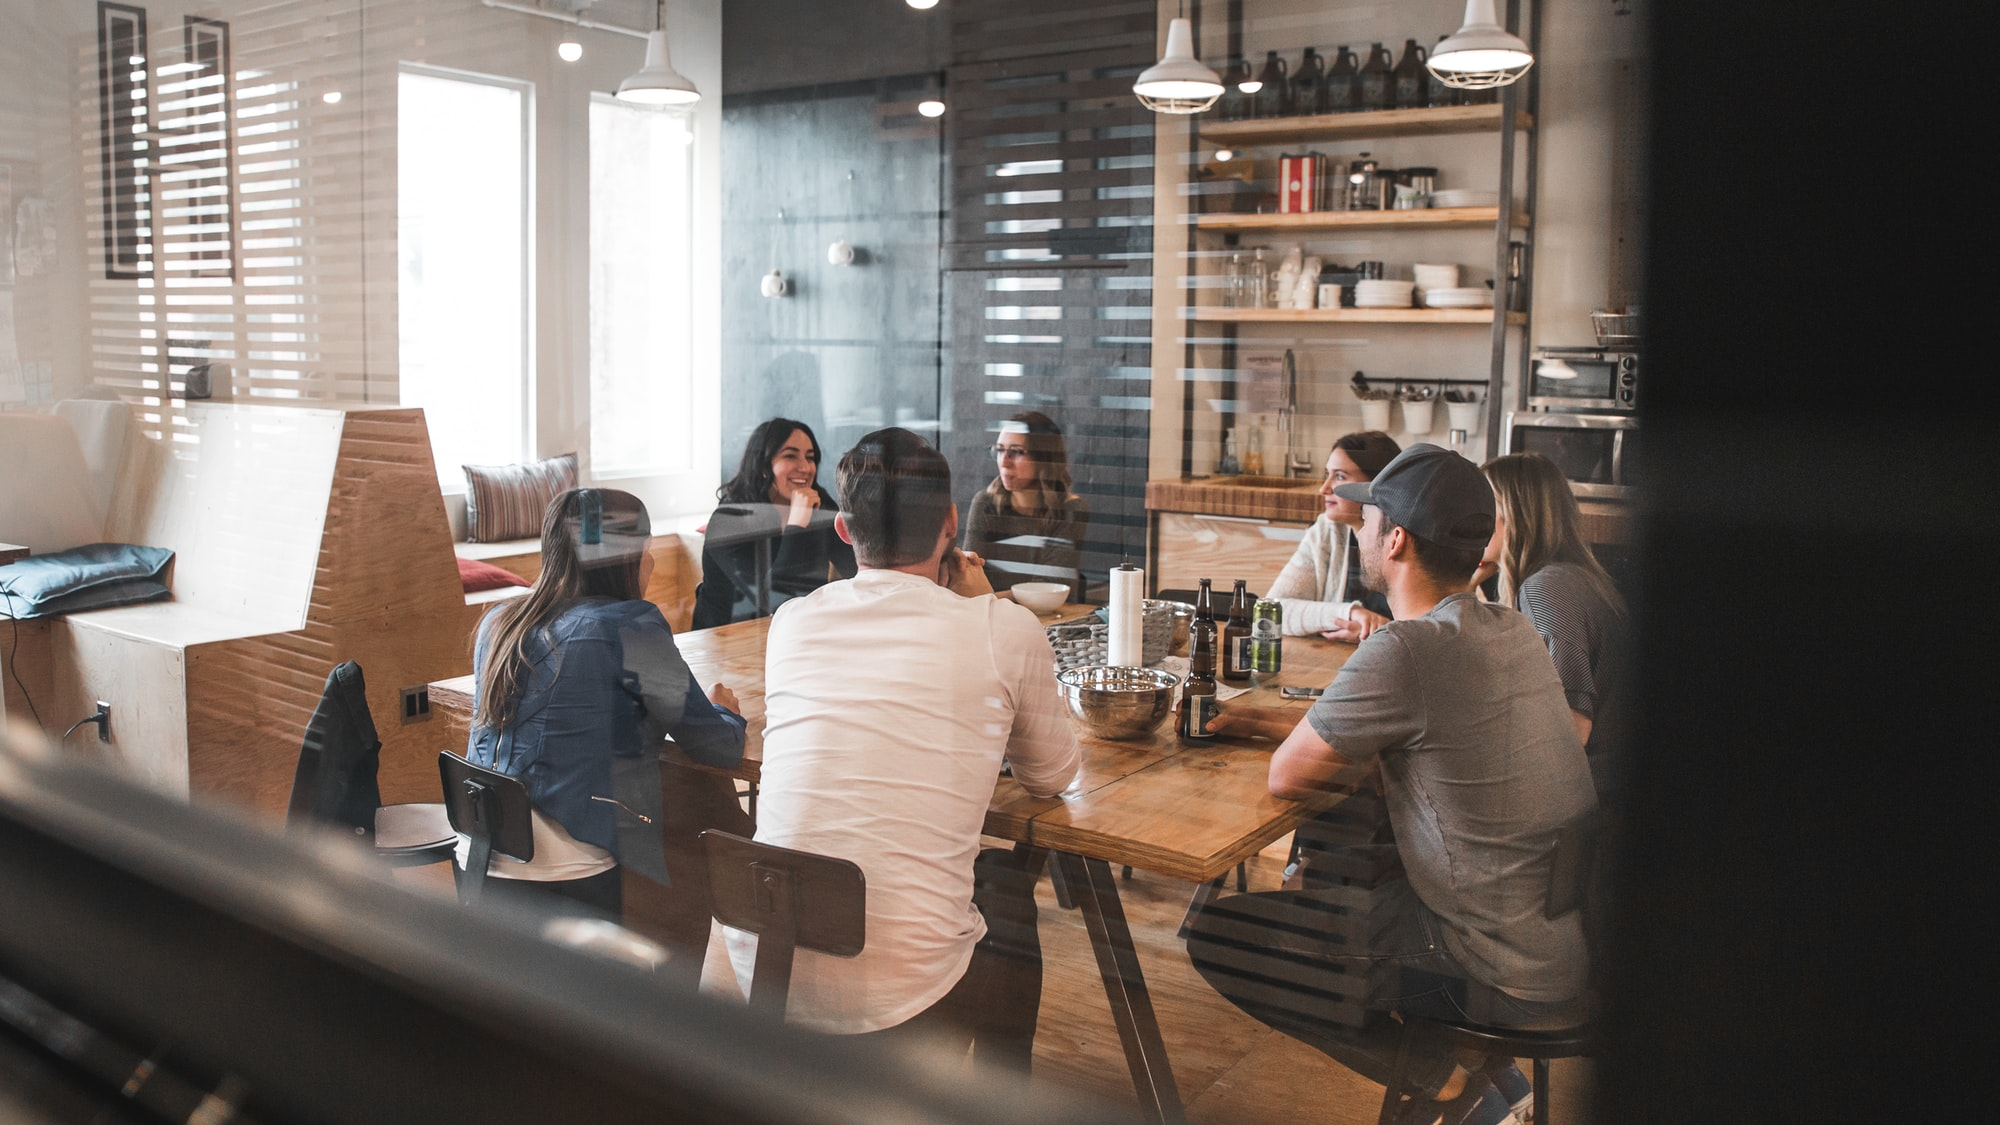 People sitting on chairs around a table in a collaborative meeting